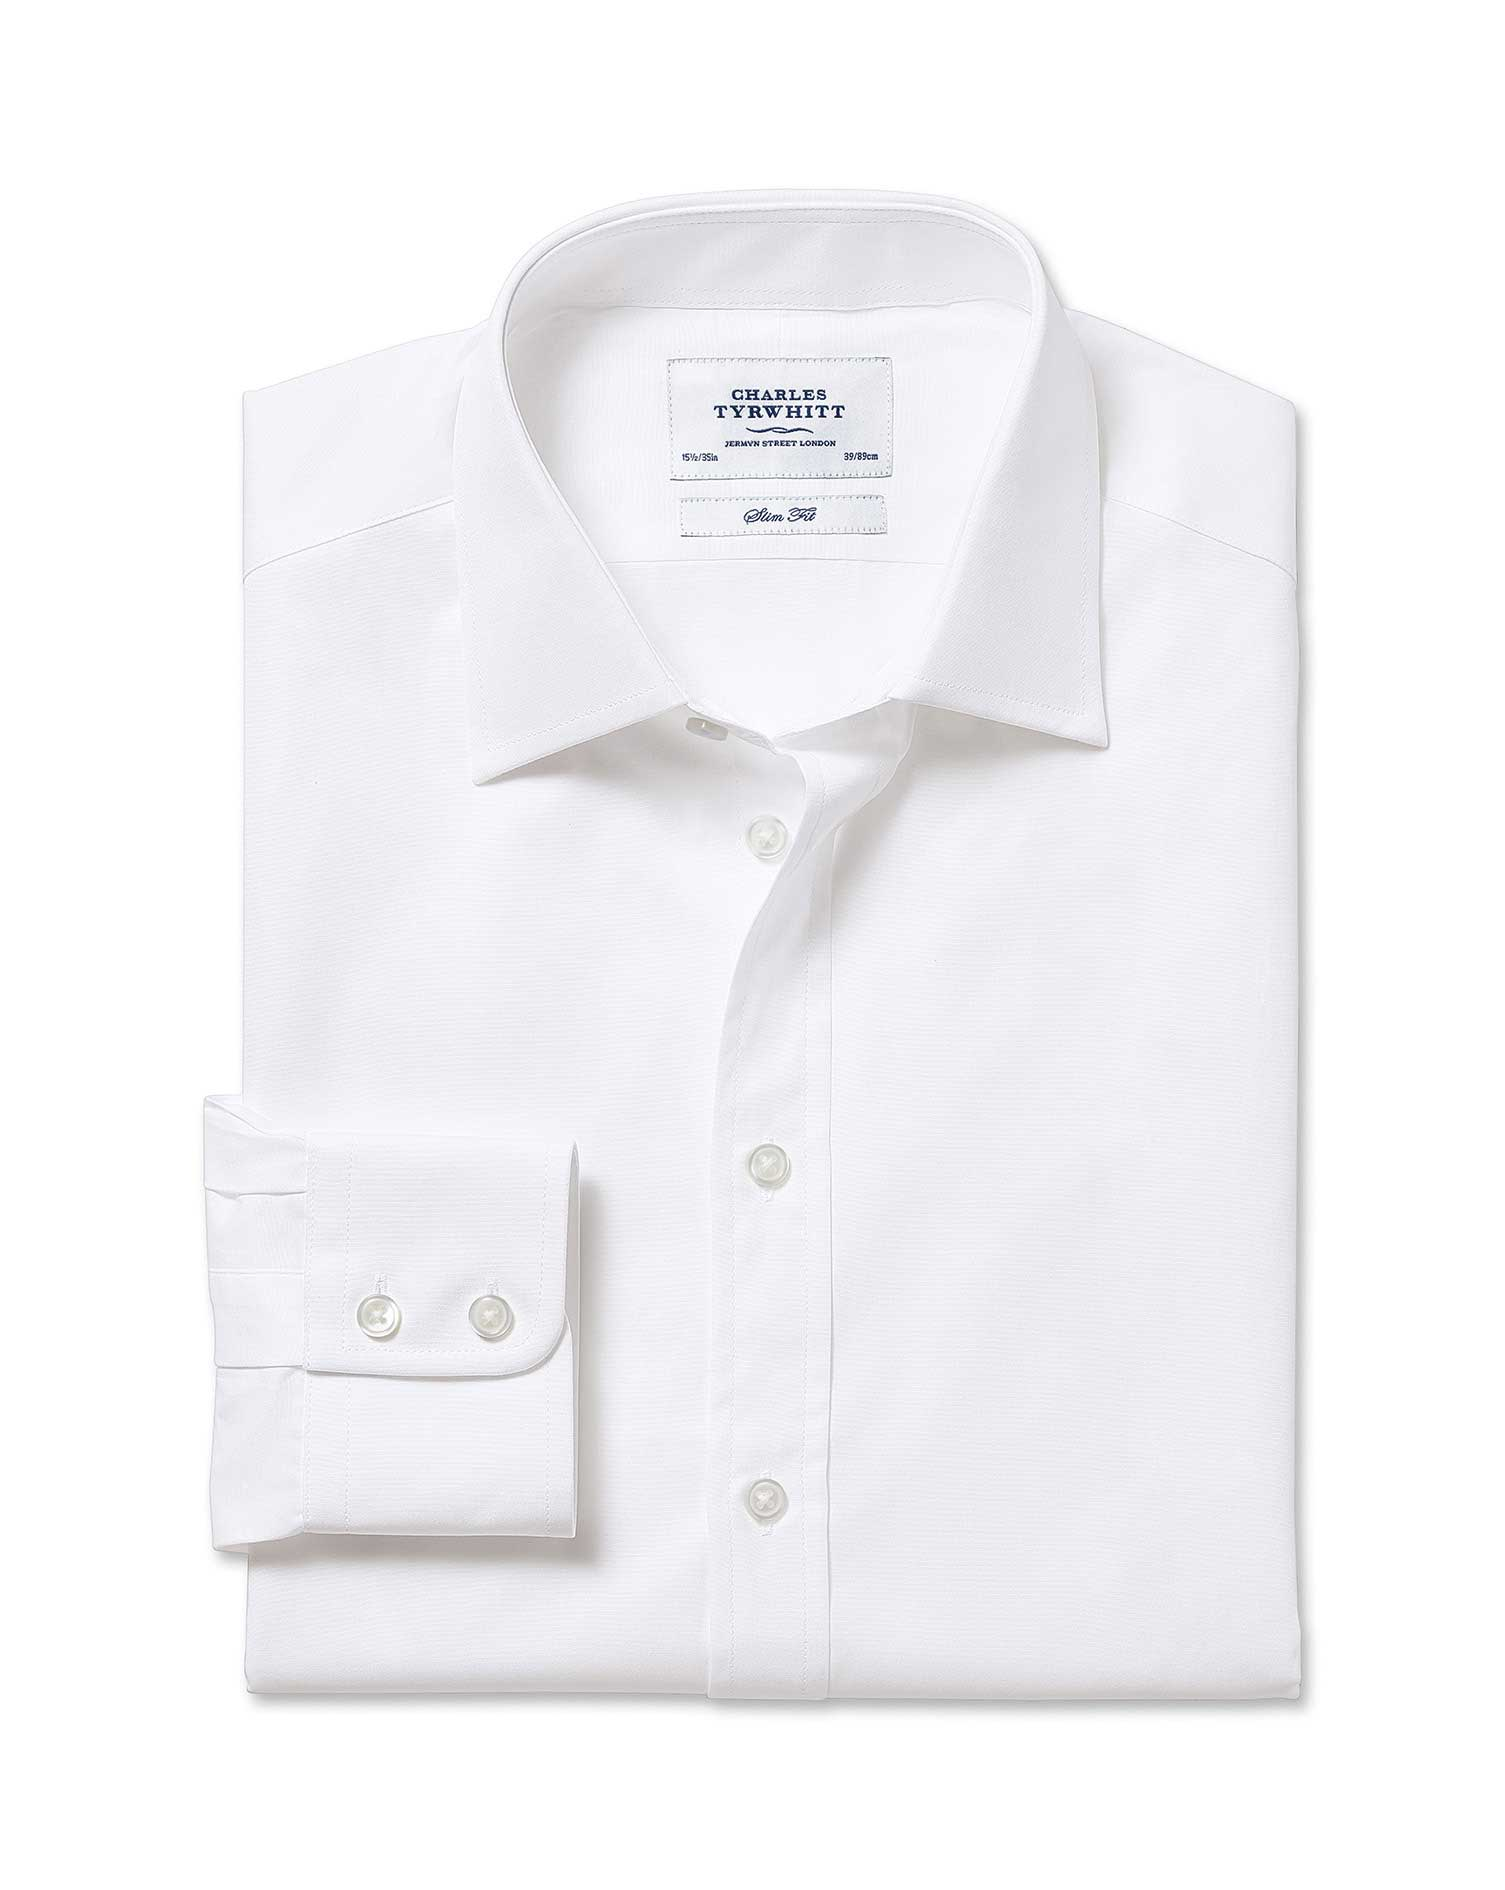 Slim Fit Egyptian Cotton Poplin White Formal Shirt Single Cuff Size 17.5/36 by Charles Tyrwhitt